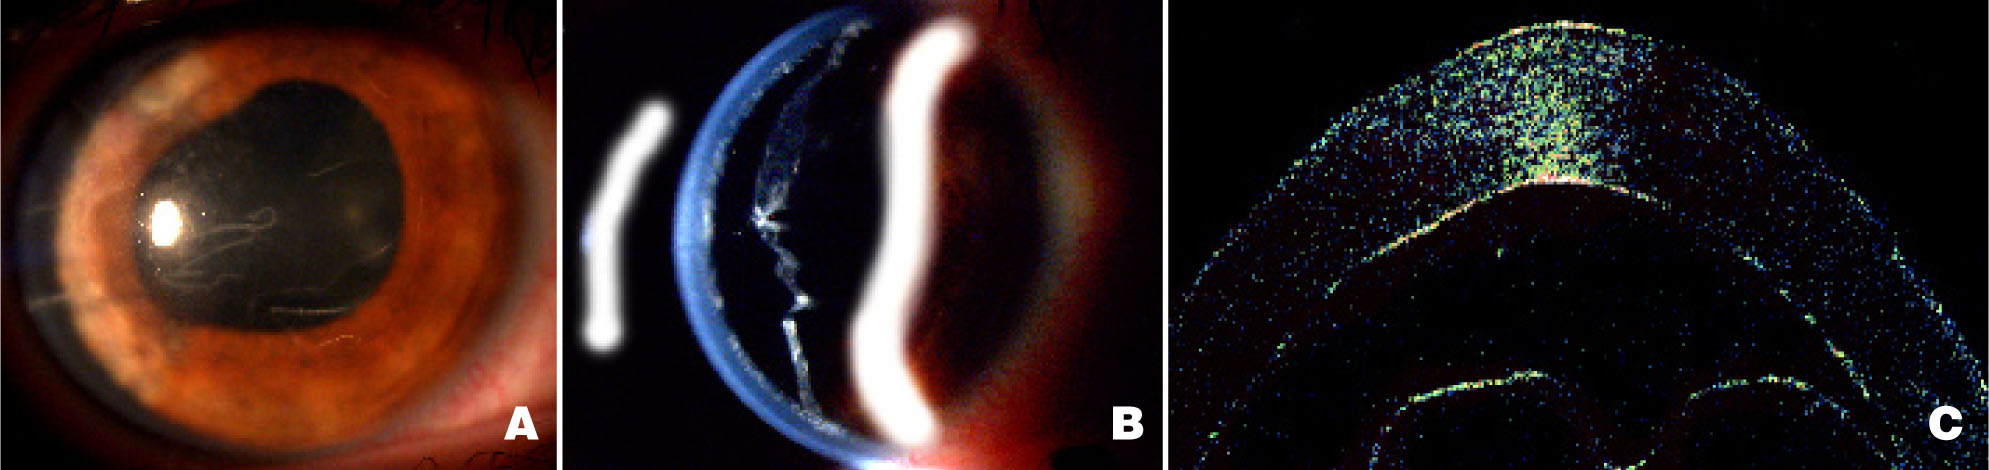 Images Delineate Extent of DMD by External, with Slit Beam, and OCT of Cornea, Respectively. (A, B) Diffuse and Slit Beam Images, Respectively, of Descemet's Membane Detachment at Time of Presentation. (C) OCT Image Confirming DM Attachment After Surgery.